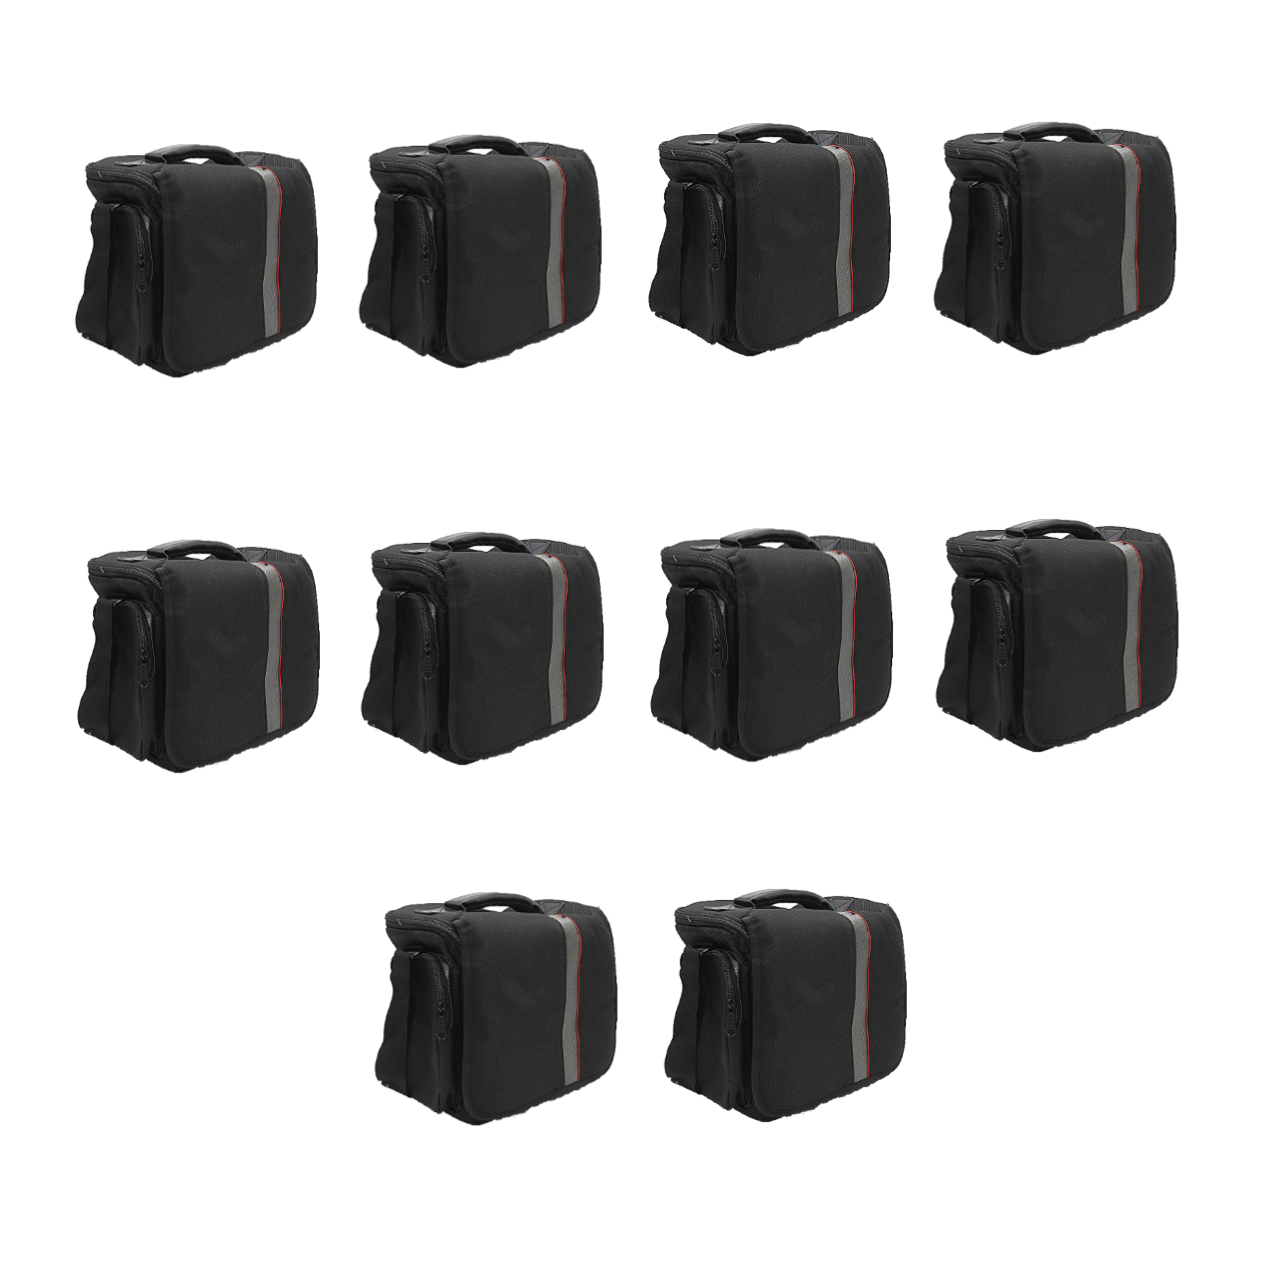 Waterproof Anti-Shock Dslr Camera Bag For Canon, Nikon, Samsung, And Sony Camera Bag -9003 Pack Of 10Pcs Camera Bags Camera Bags